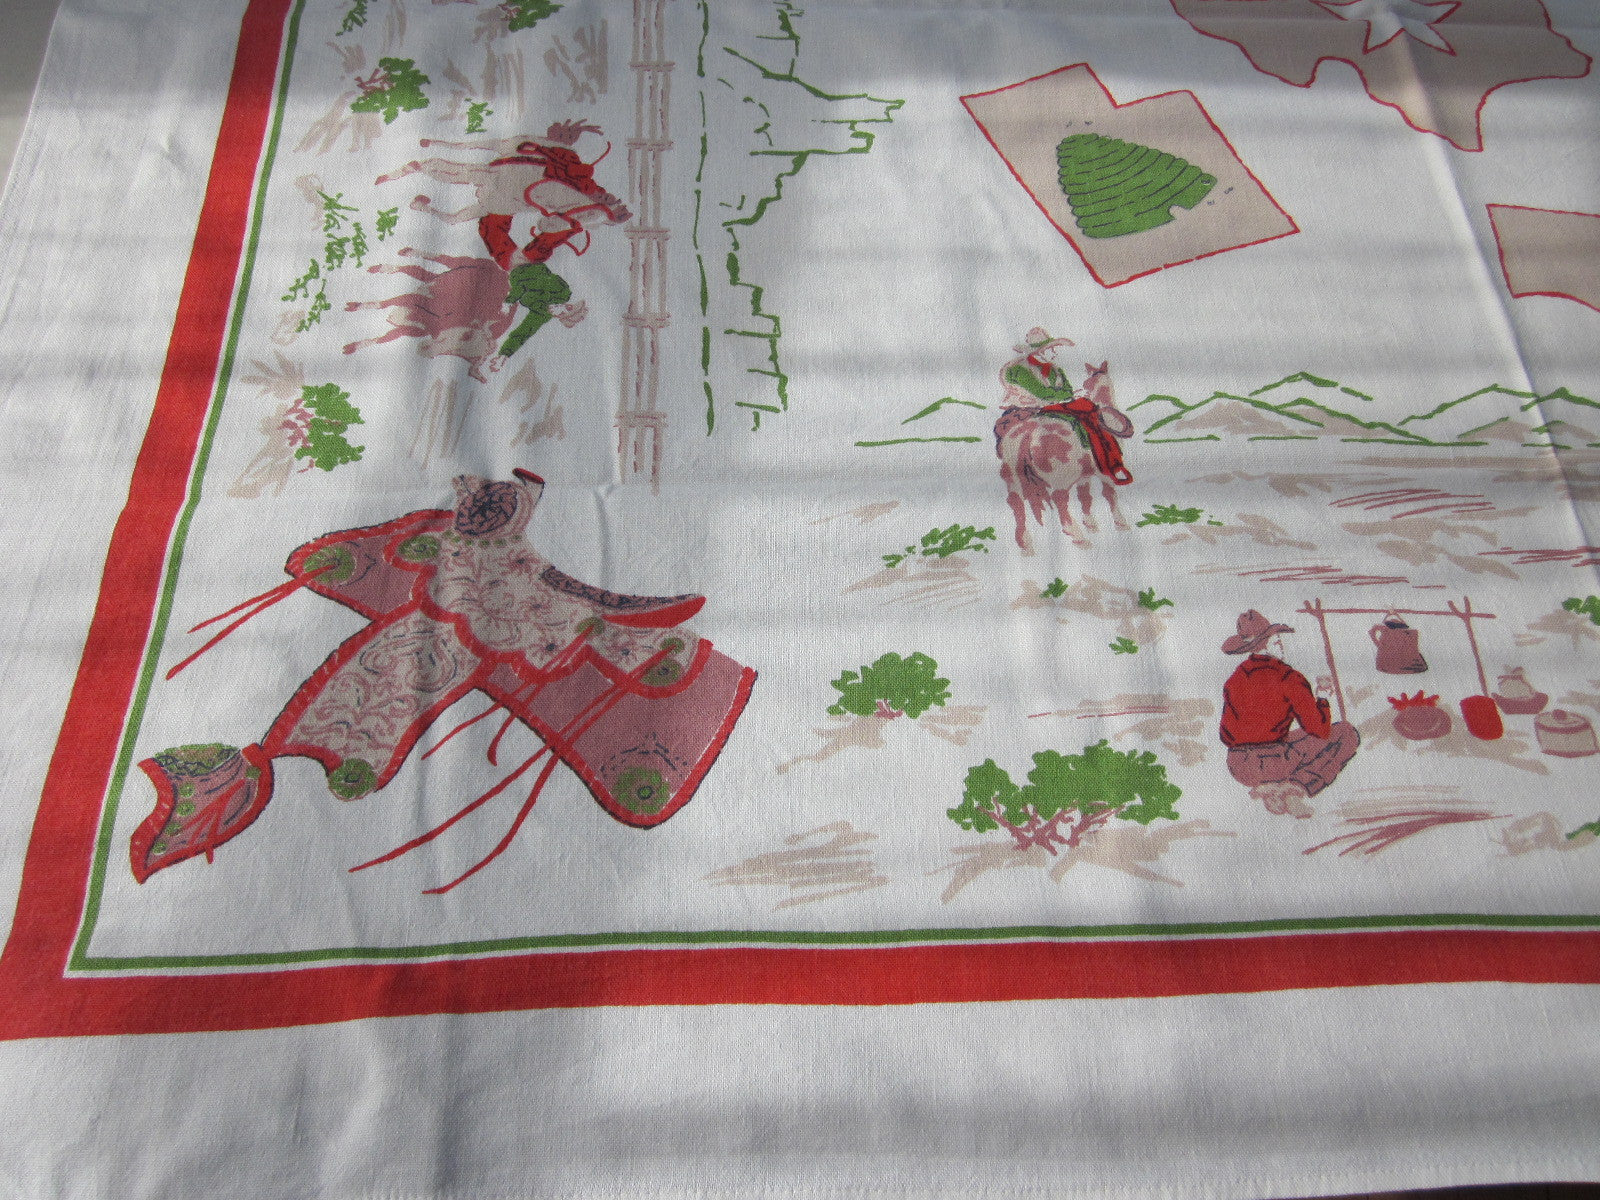 Startex Western States Novelty Vintage Printed Tablecloth (54 X 45)